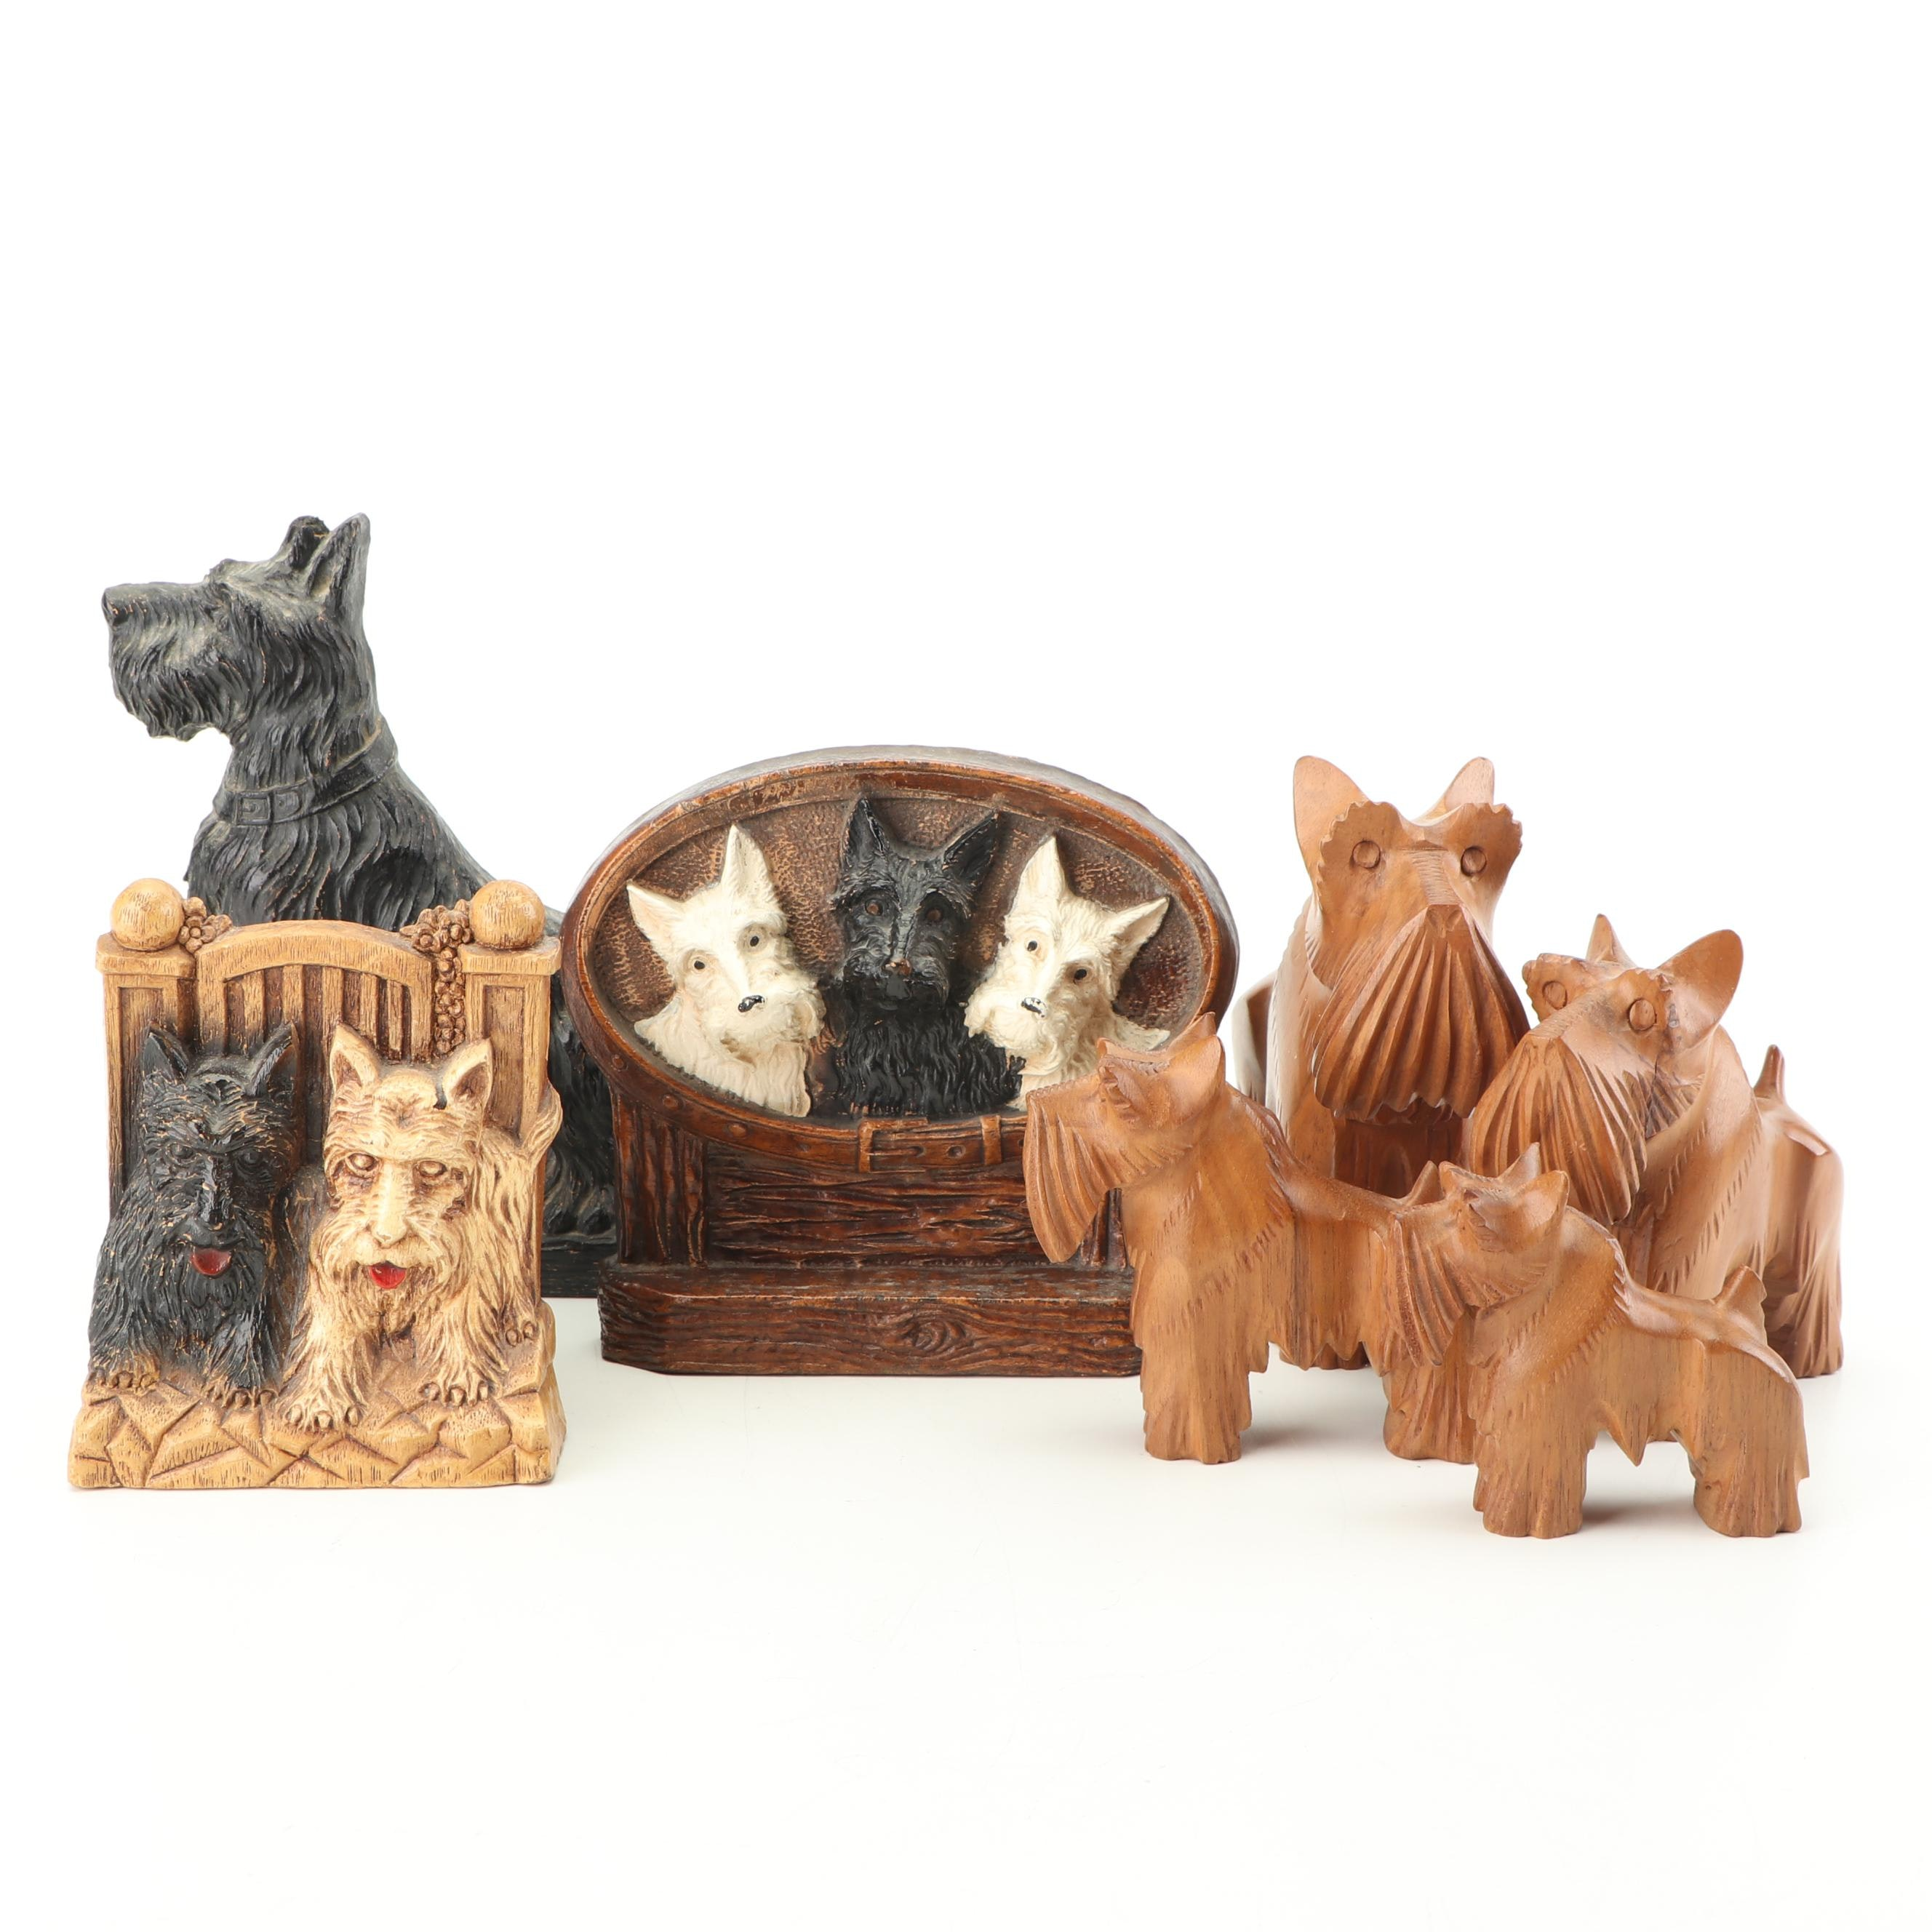 Vintage Scottish Terrier Figurines and Decor